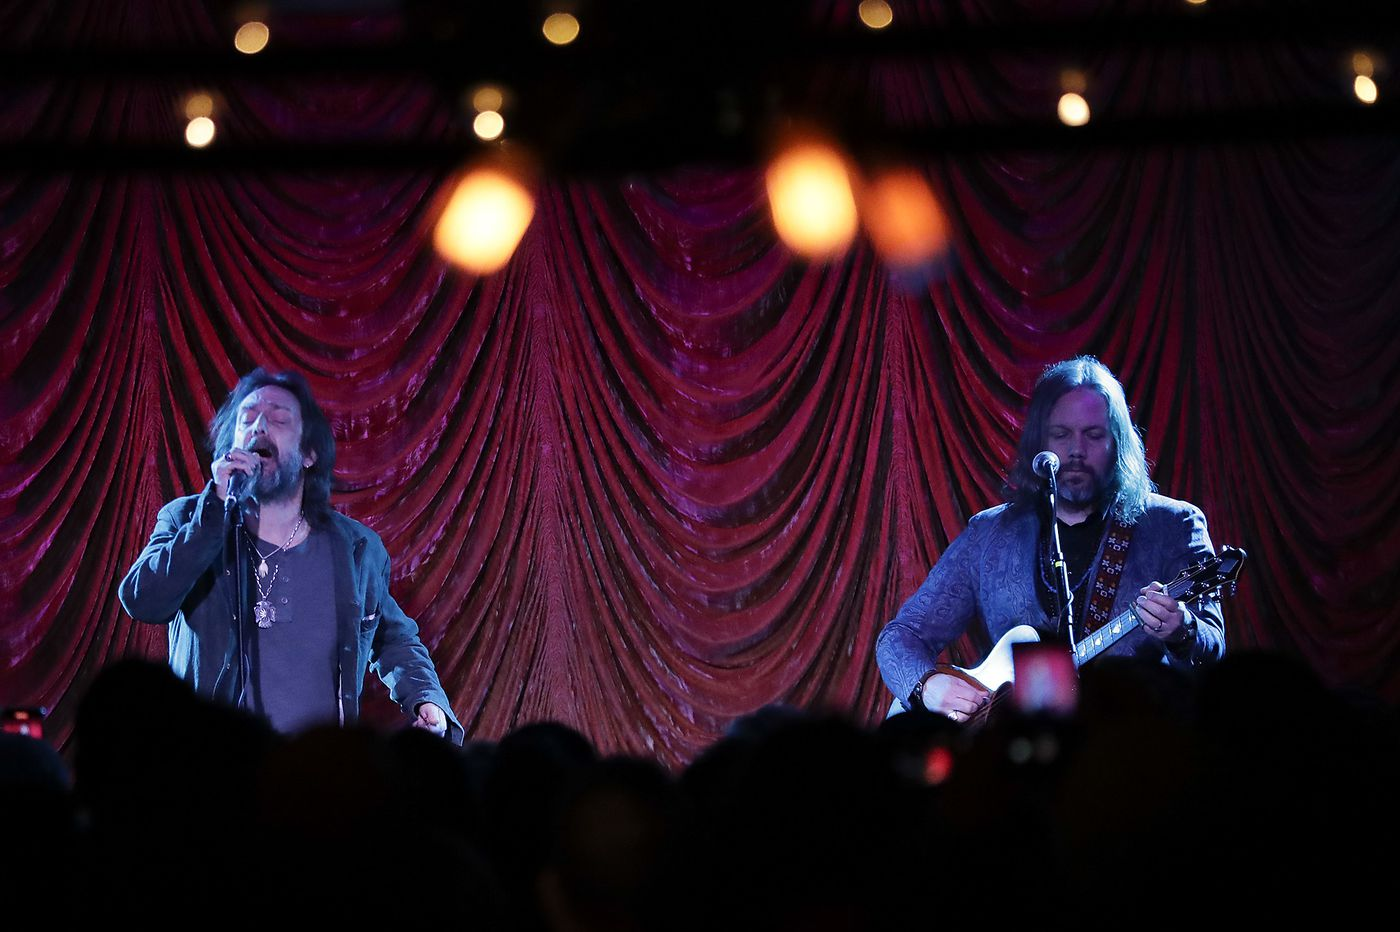 Review: Black Crowes bros play two Philly shows as 'Brothers of a Feather'